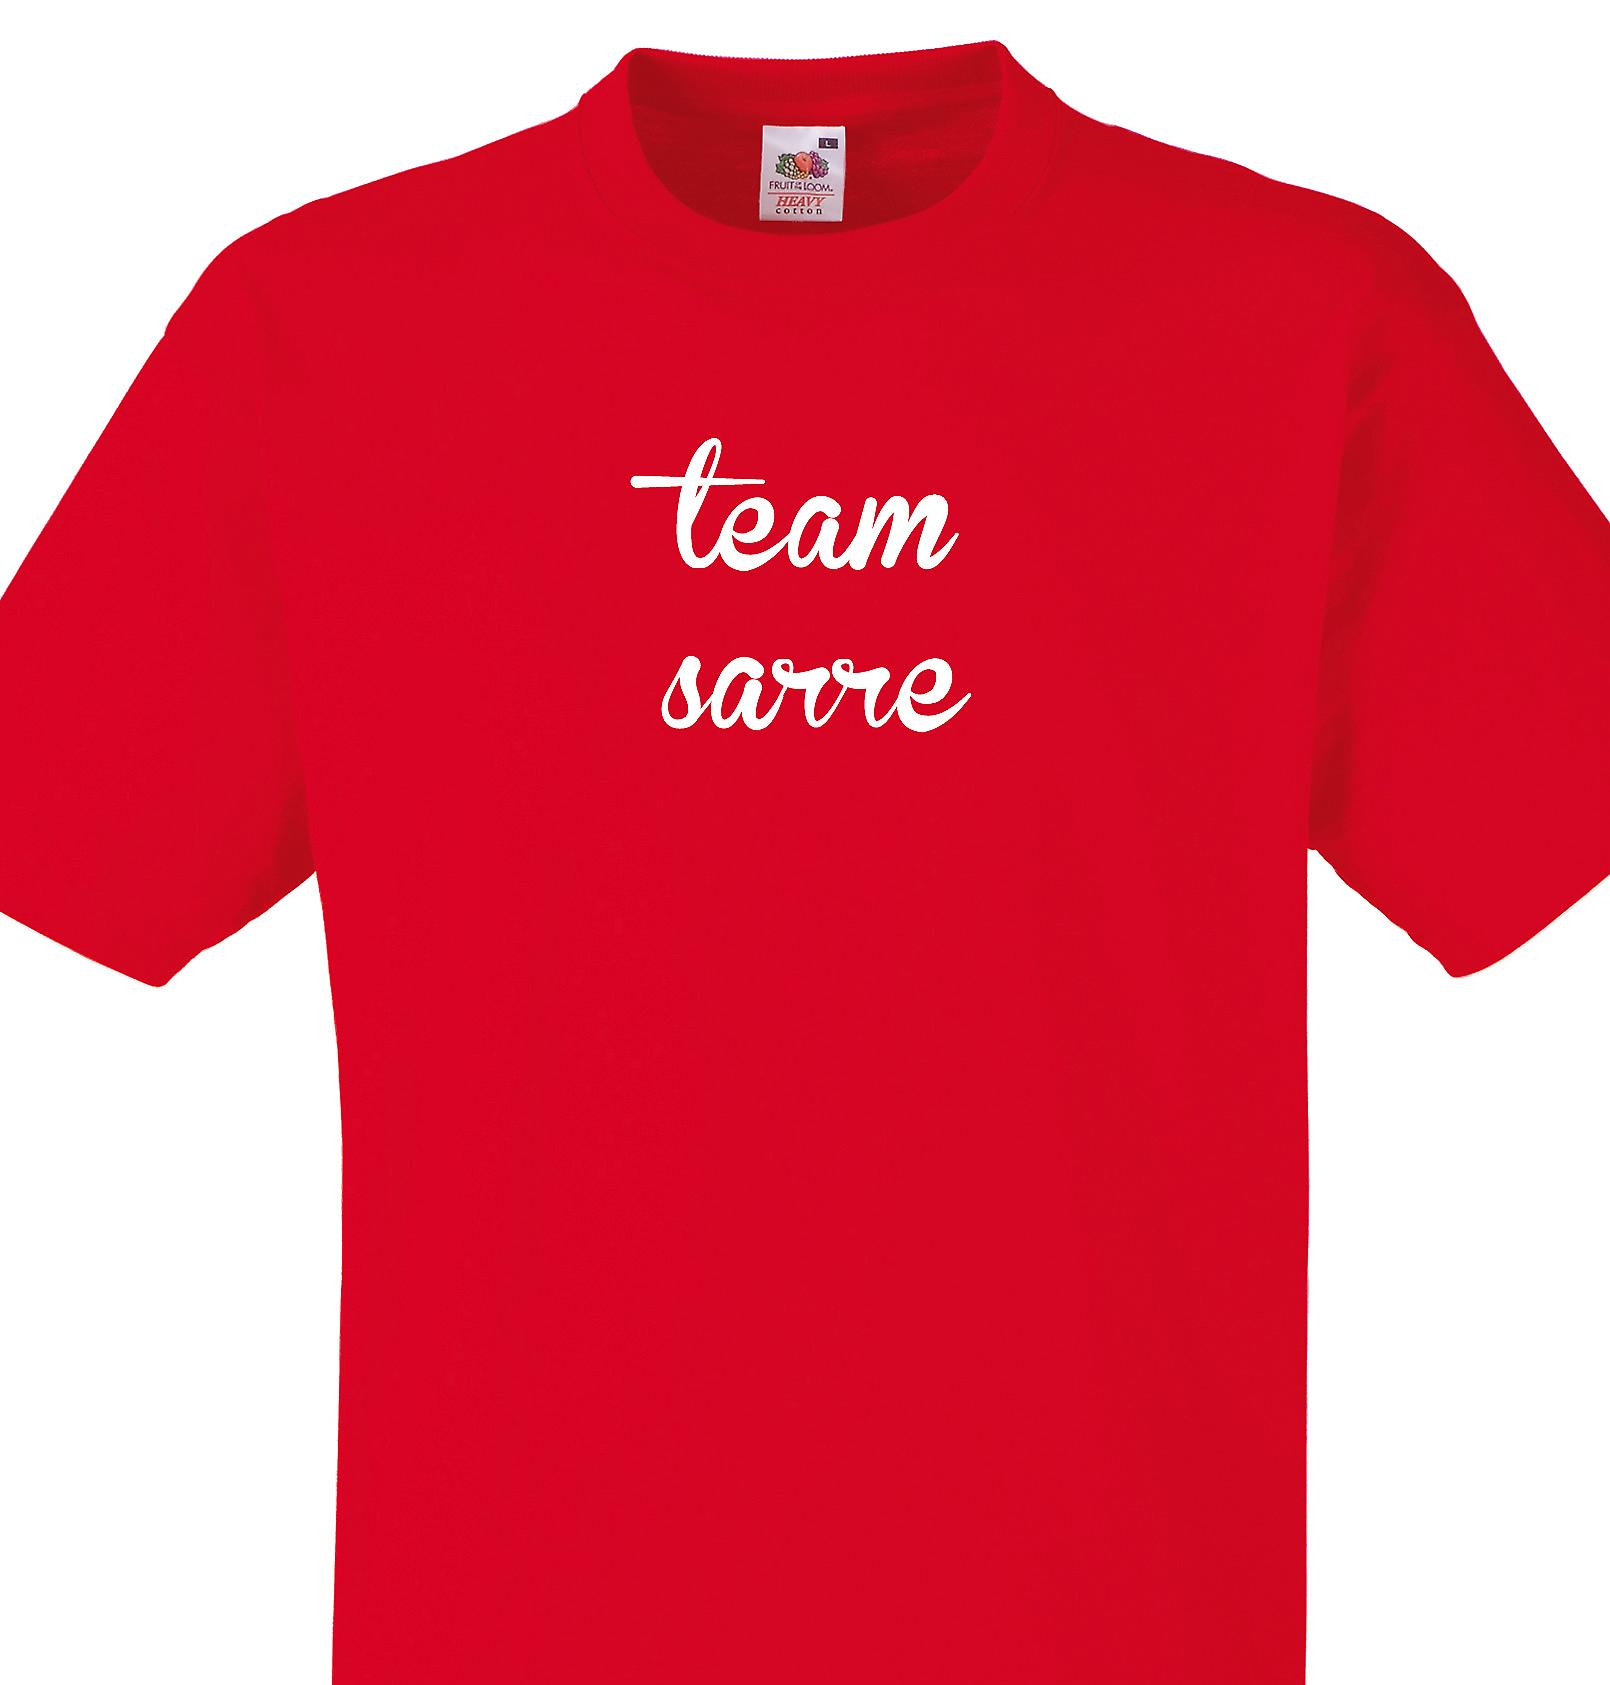 Team Sarre Red T shirt